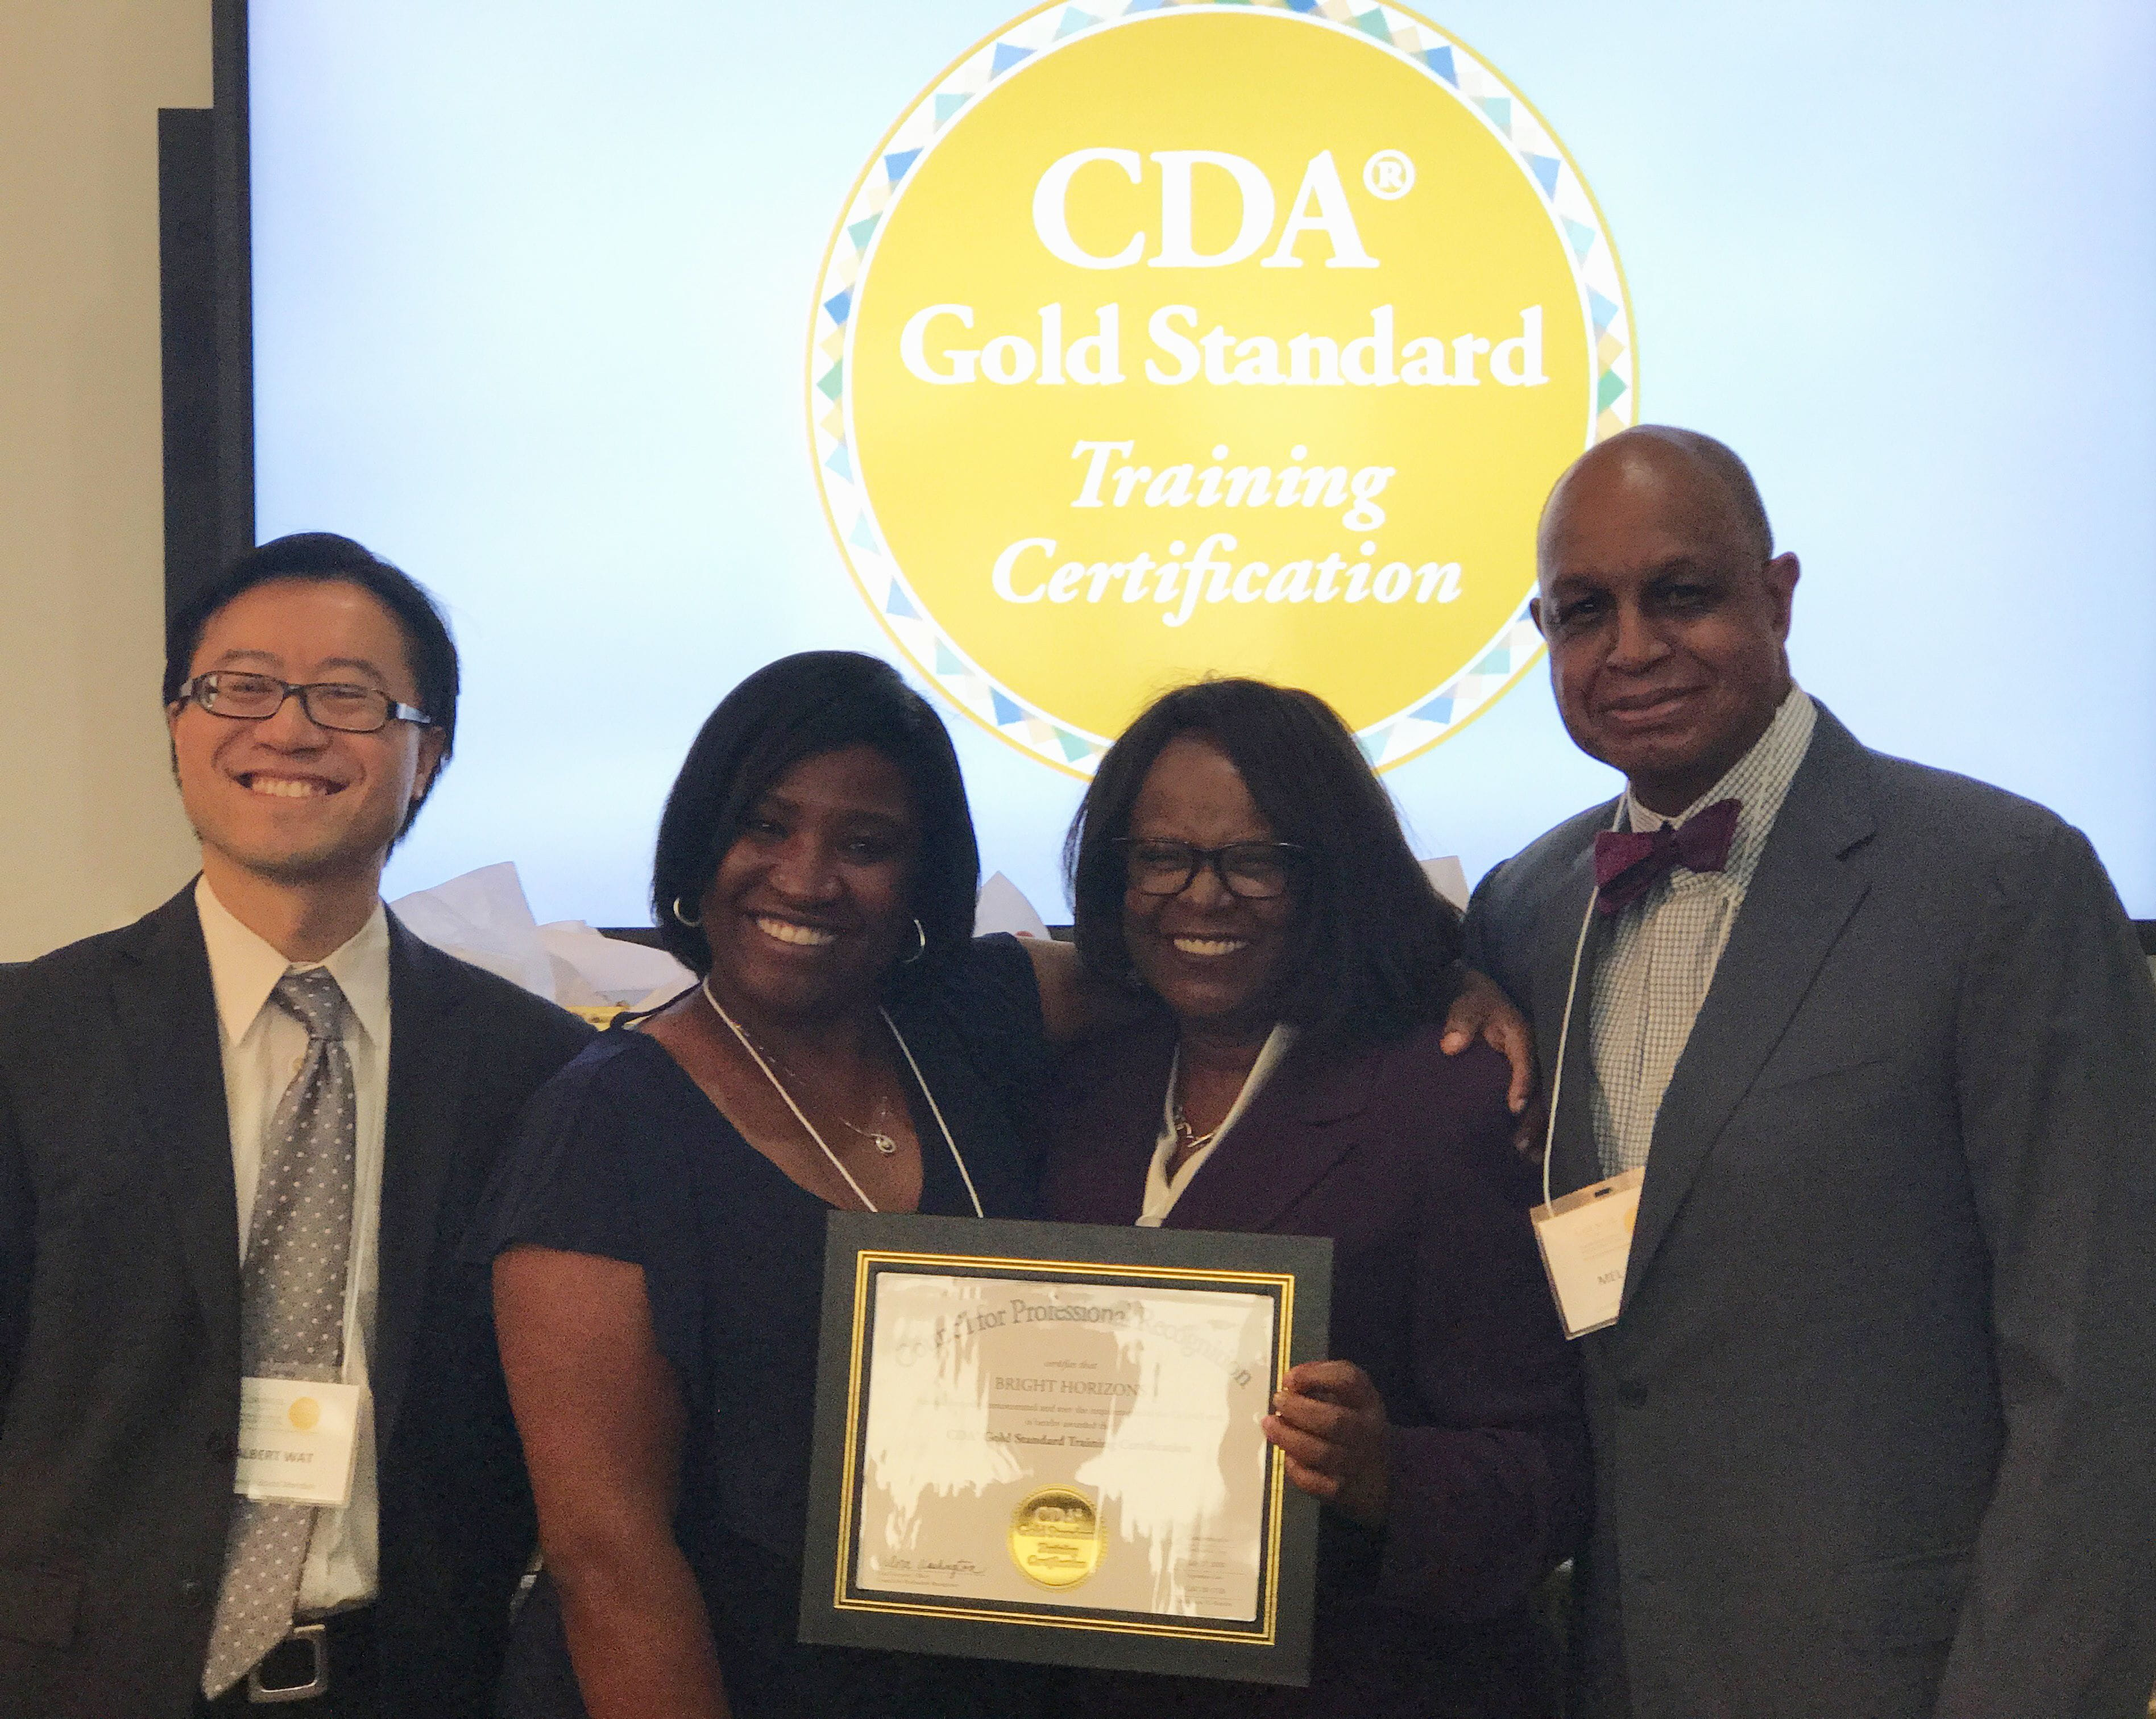 Bright Horizons Awarded Cda Gold Standard Training Certification